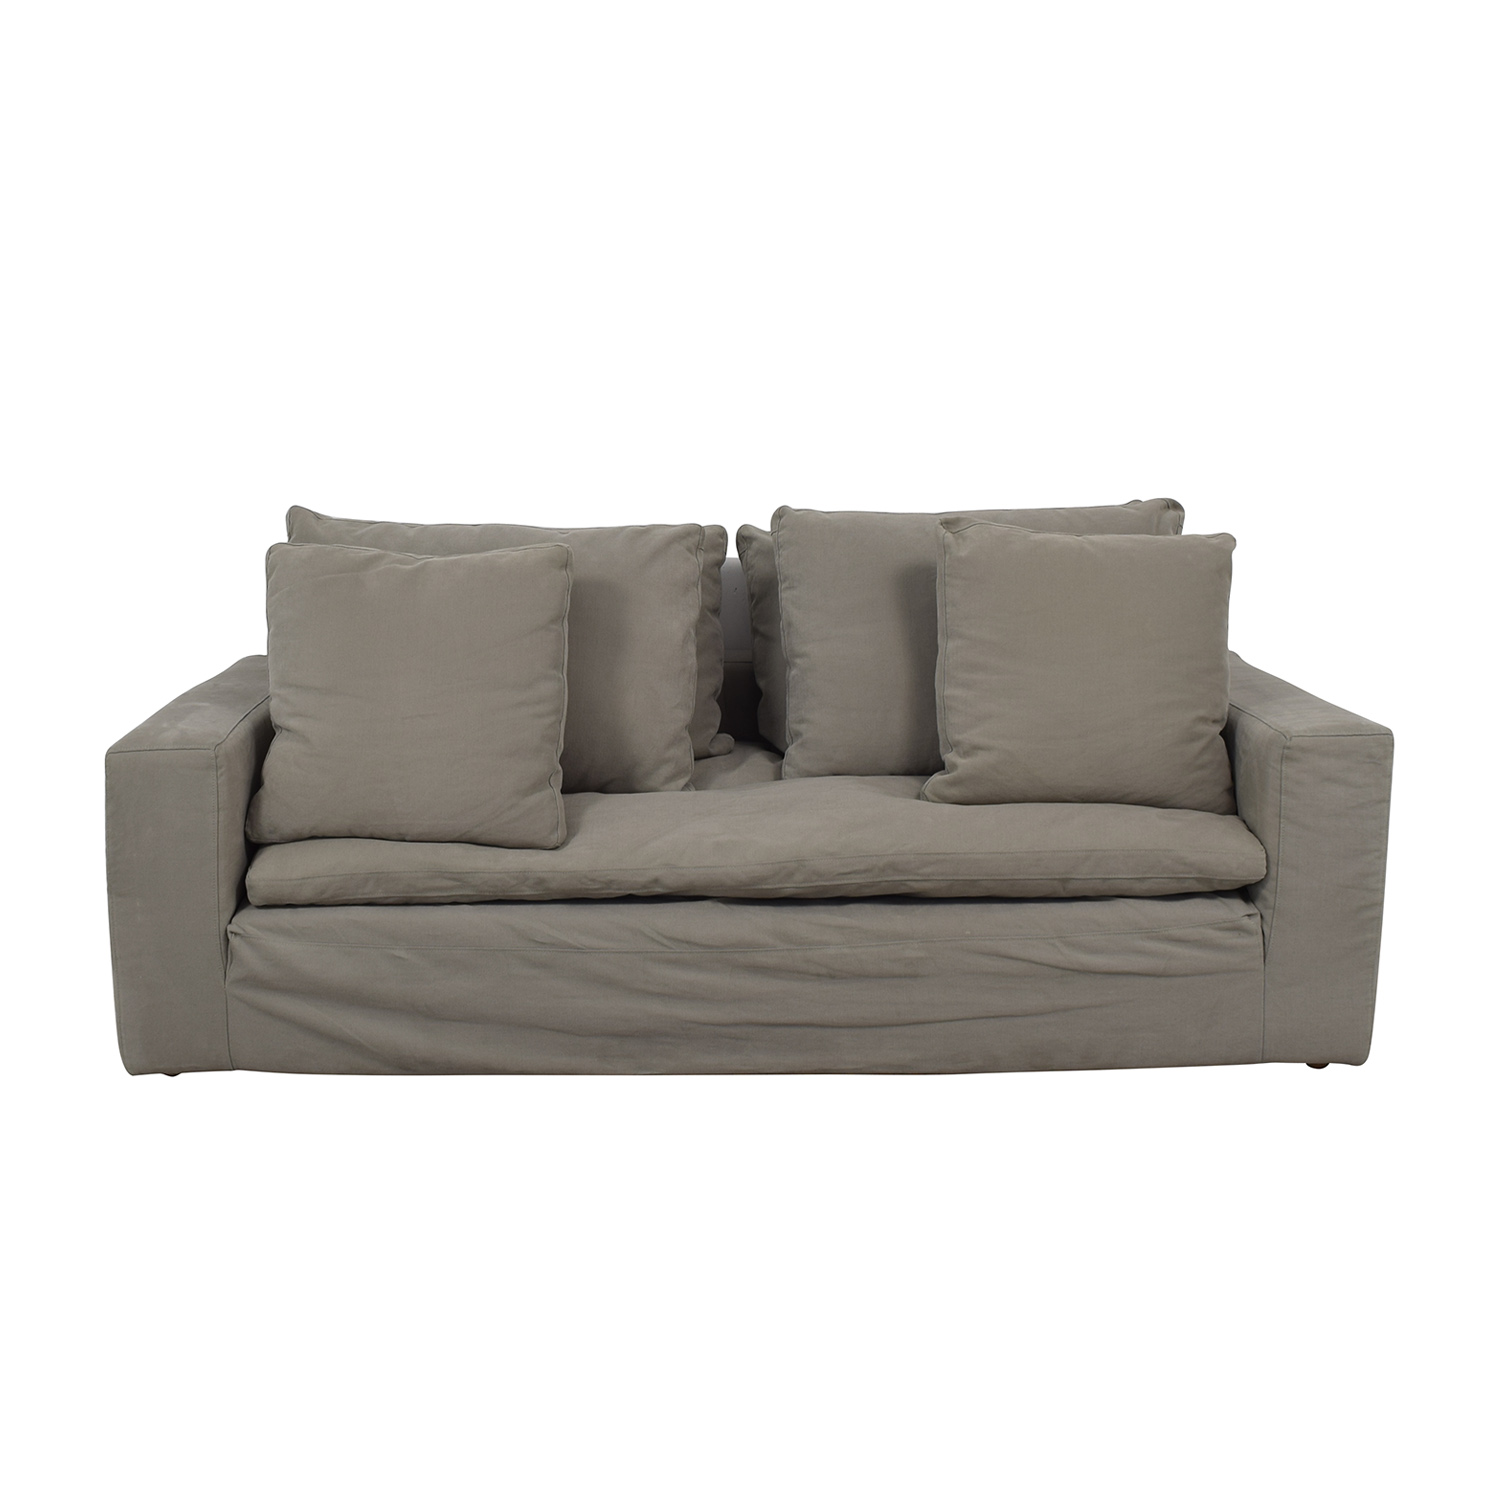 Restoration Hardware Restoration Hardware Cloud Track Arm Grey Single Cushion Sofa dimensions